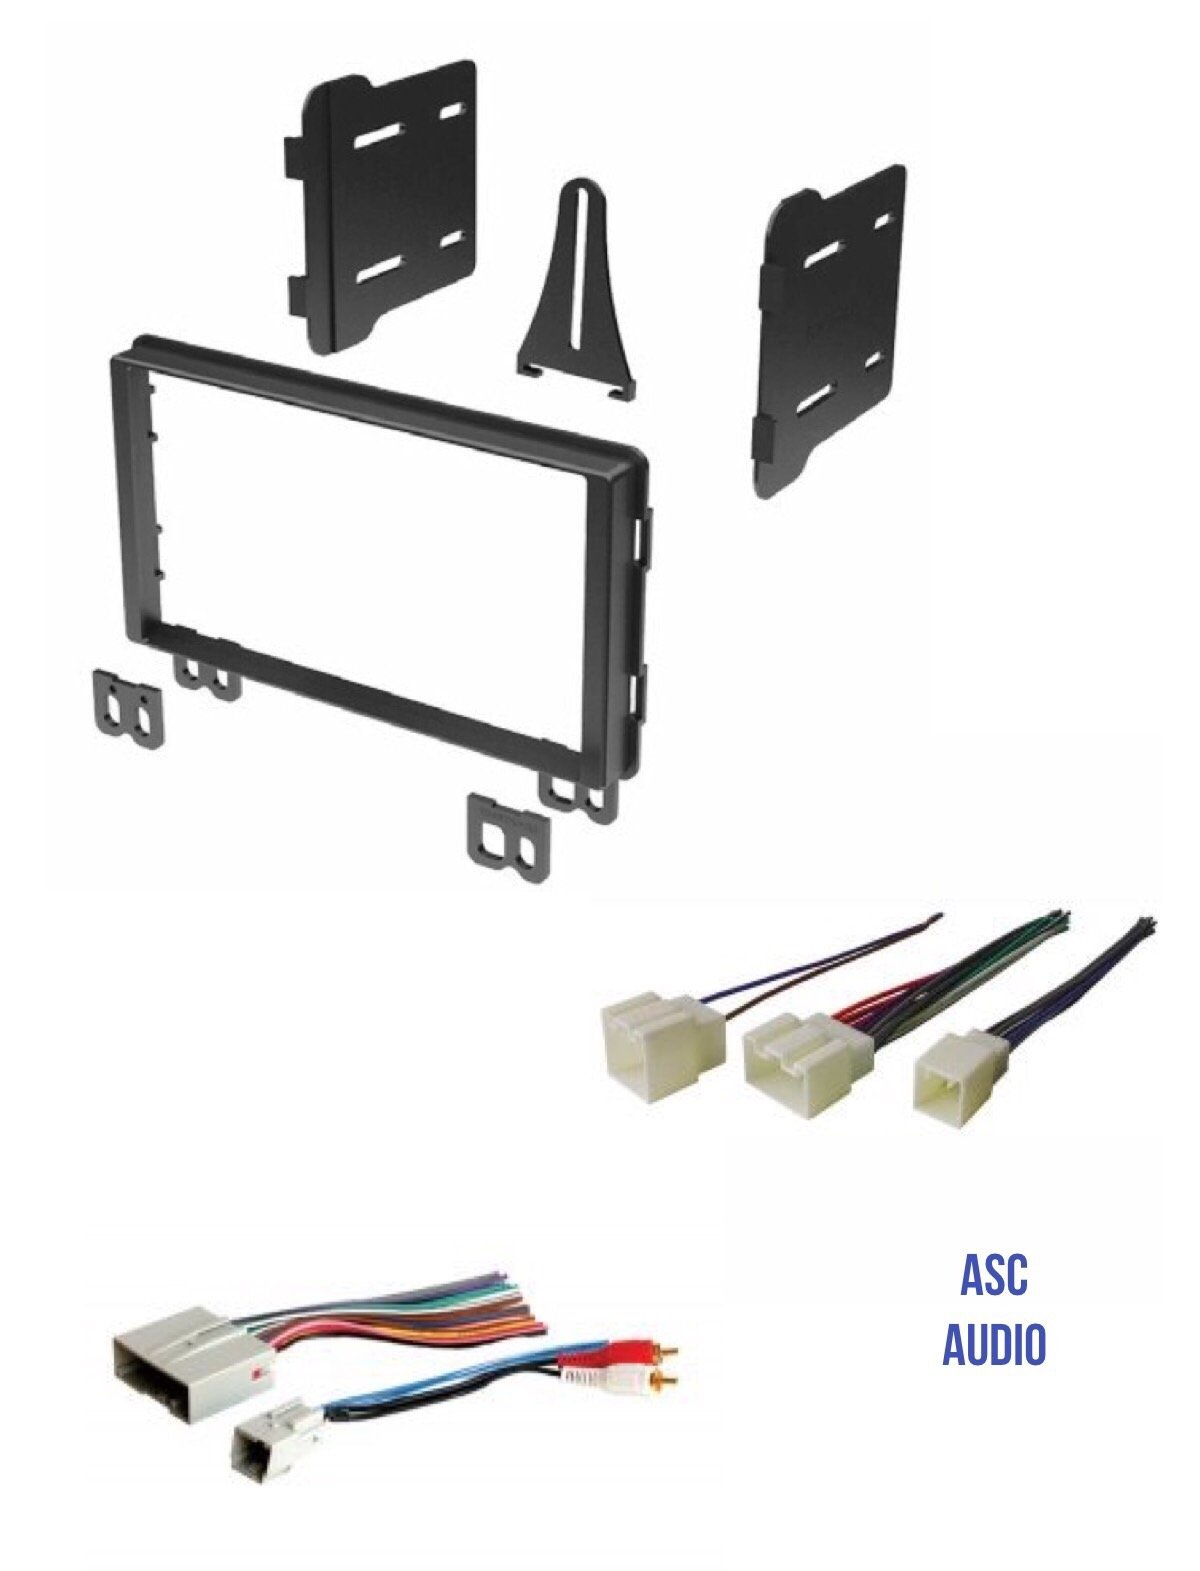 hight resolution of get quotations asc audio double din car stereo radio install dash kit and wire harness for select ford